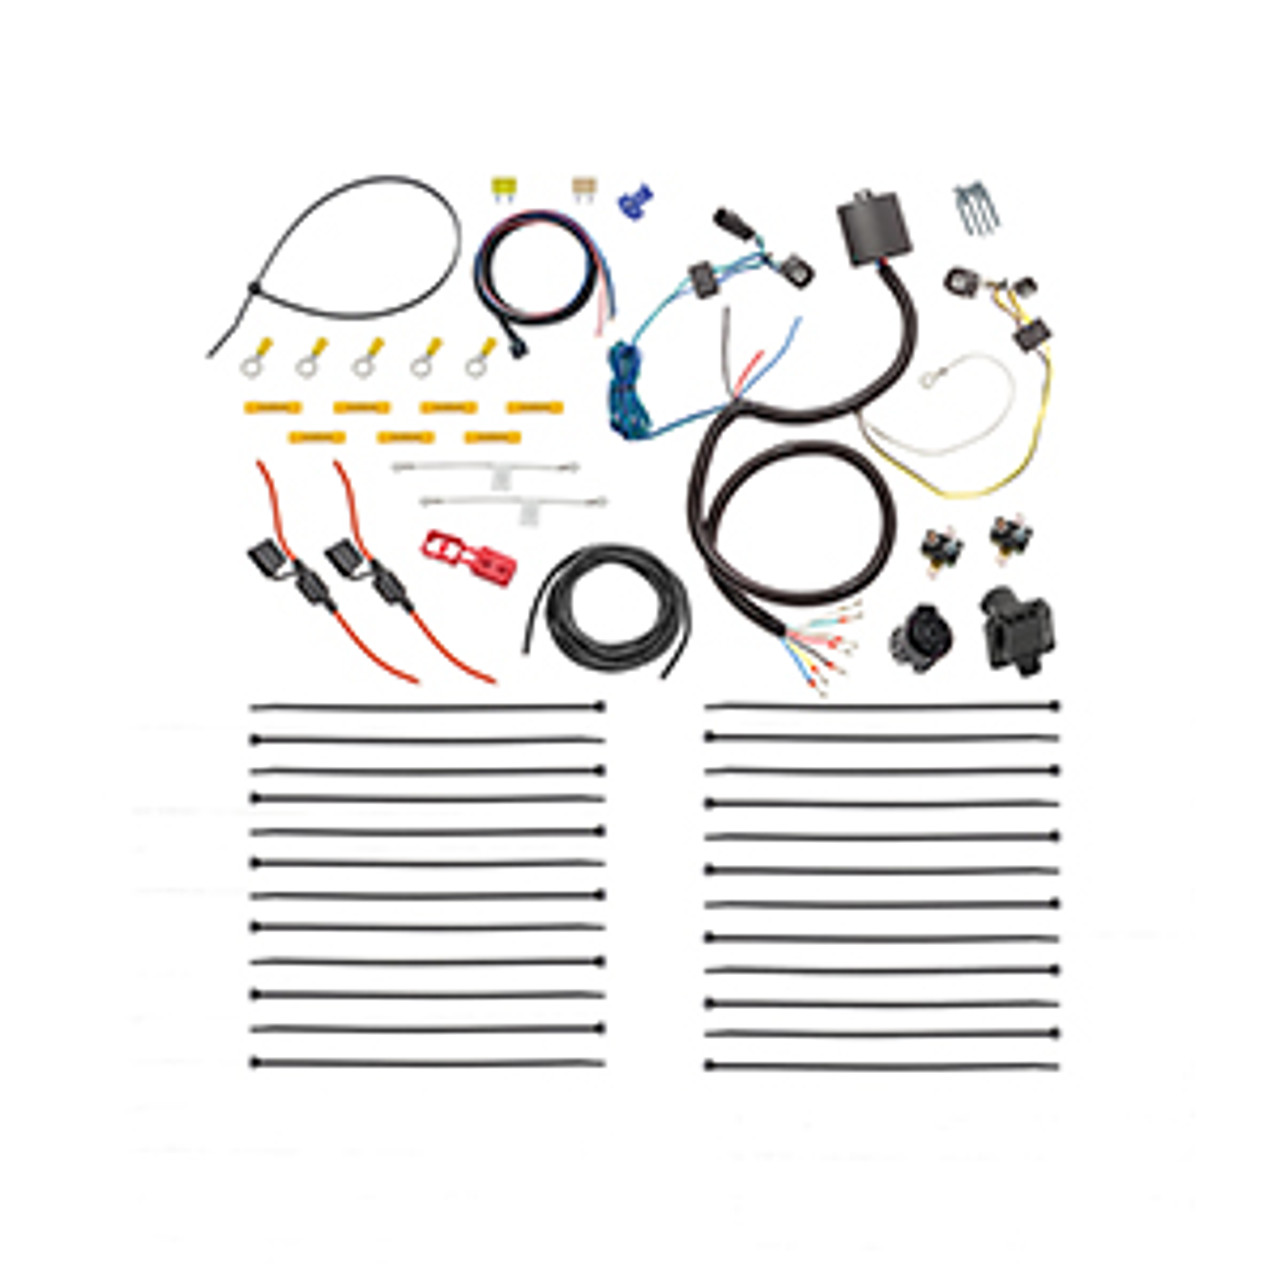 22121 --- Tow Harness, 7 Way Complete Kit